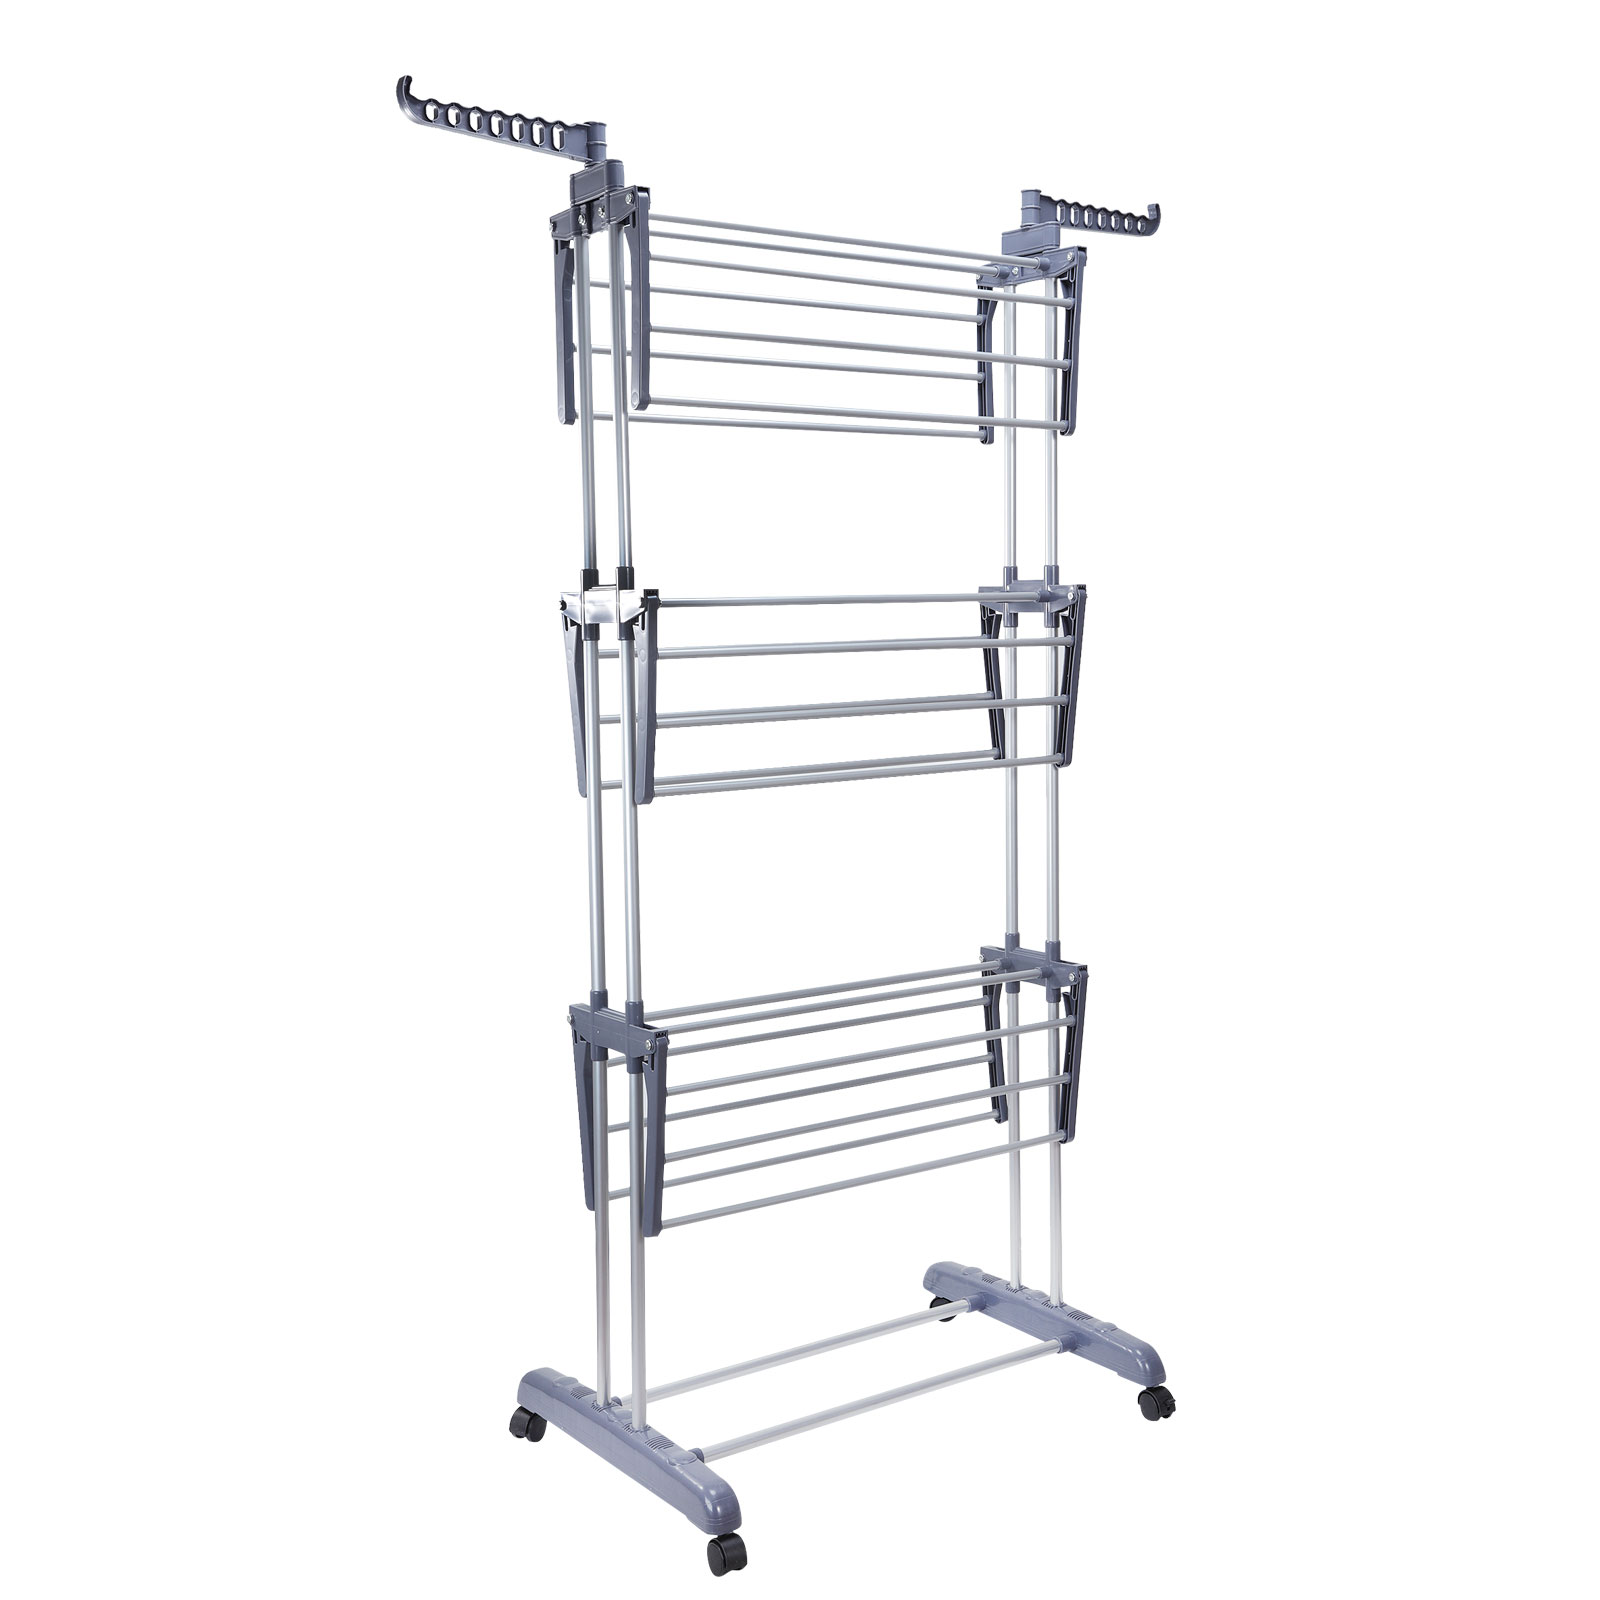 Foldable 6 Tiers Clothes Airer Indoor Laundry Drying Rack